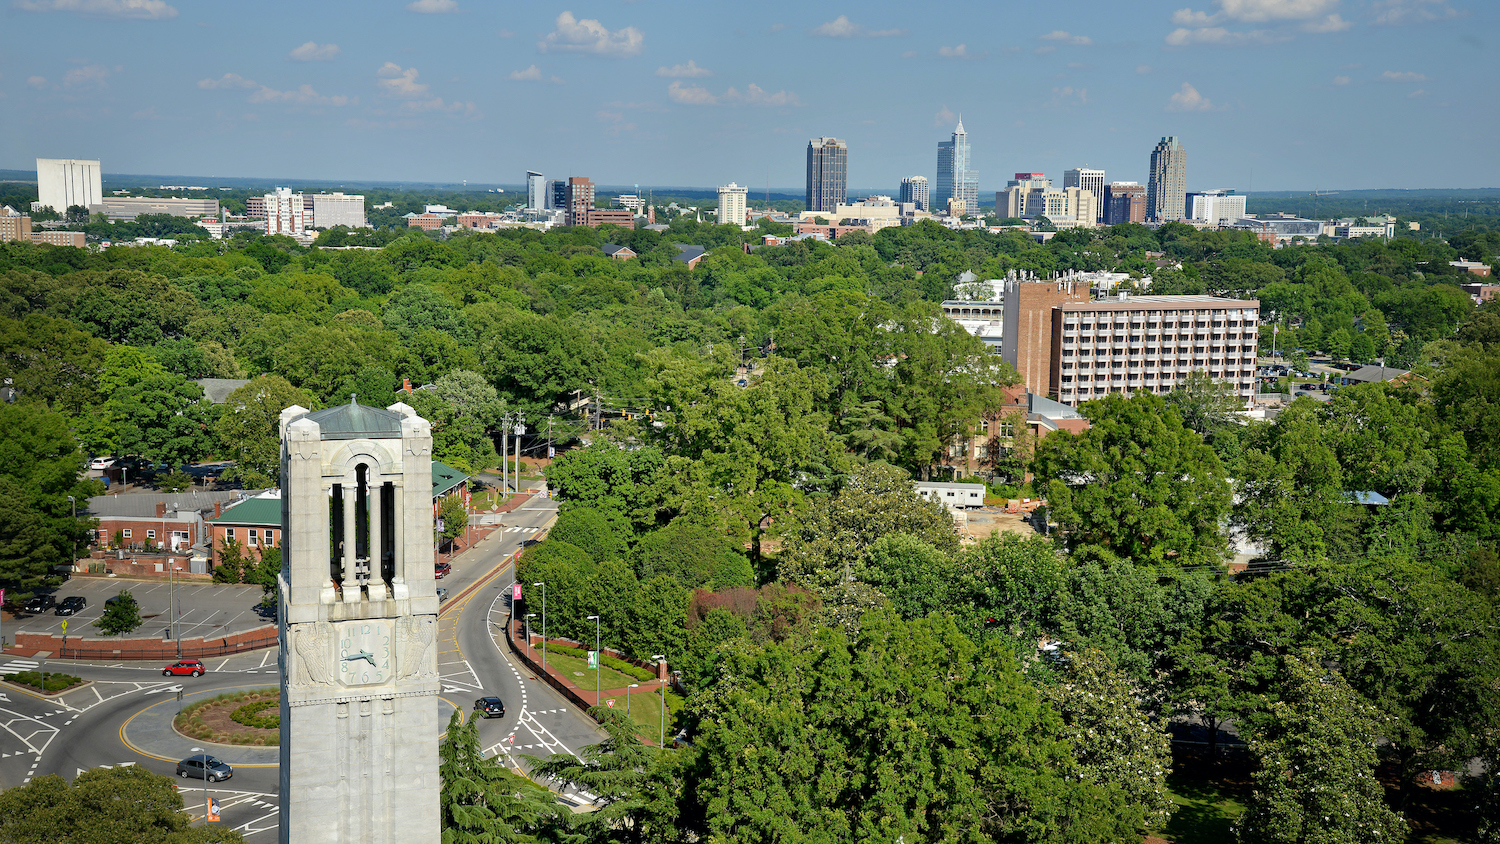 Overview of NC State's campus including part of the Belltower.